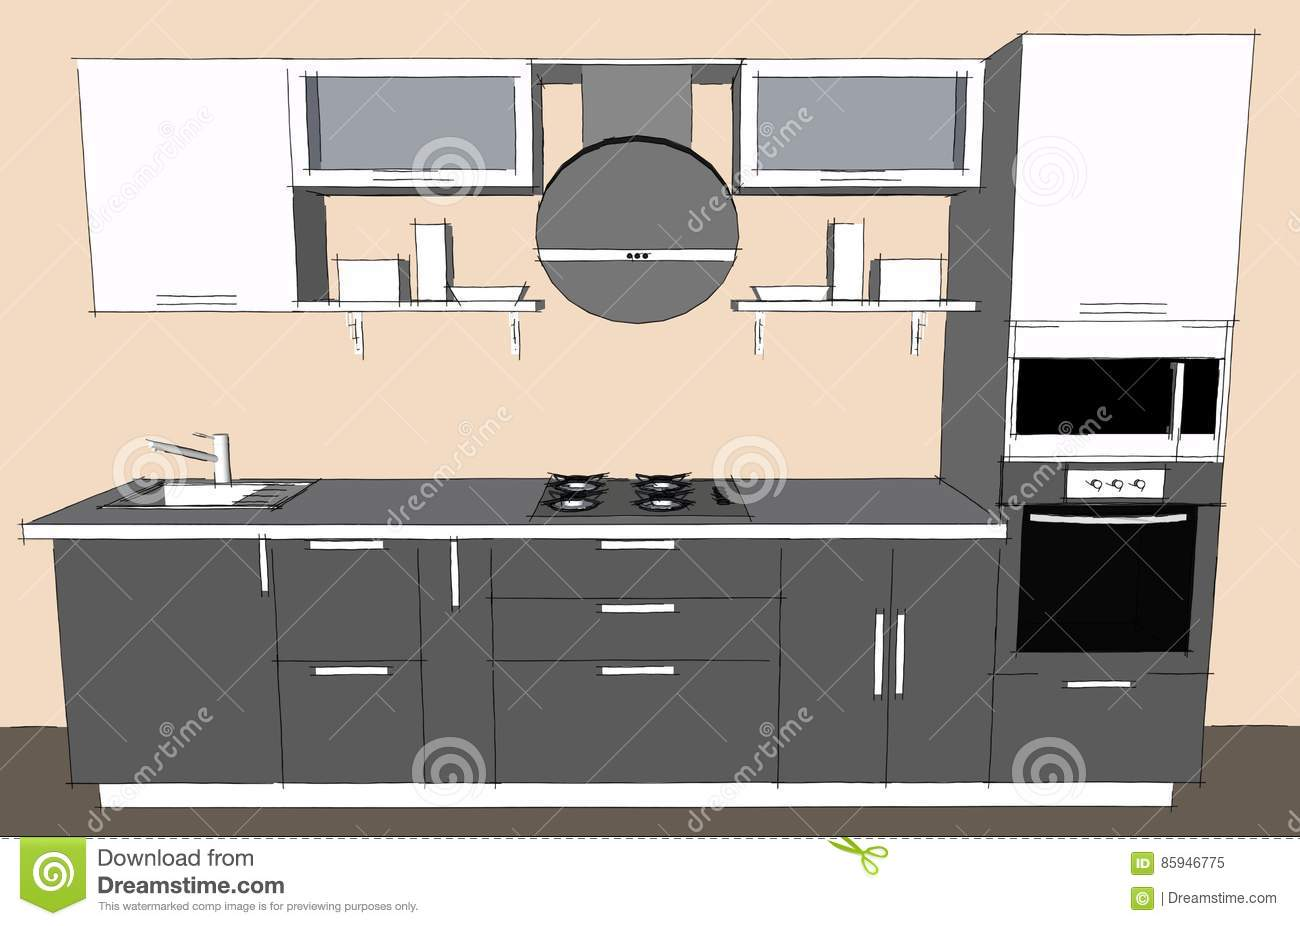 sketch drawing of 3d grey modern kitchen interior with round hood